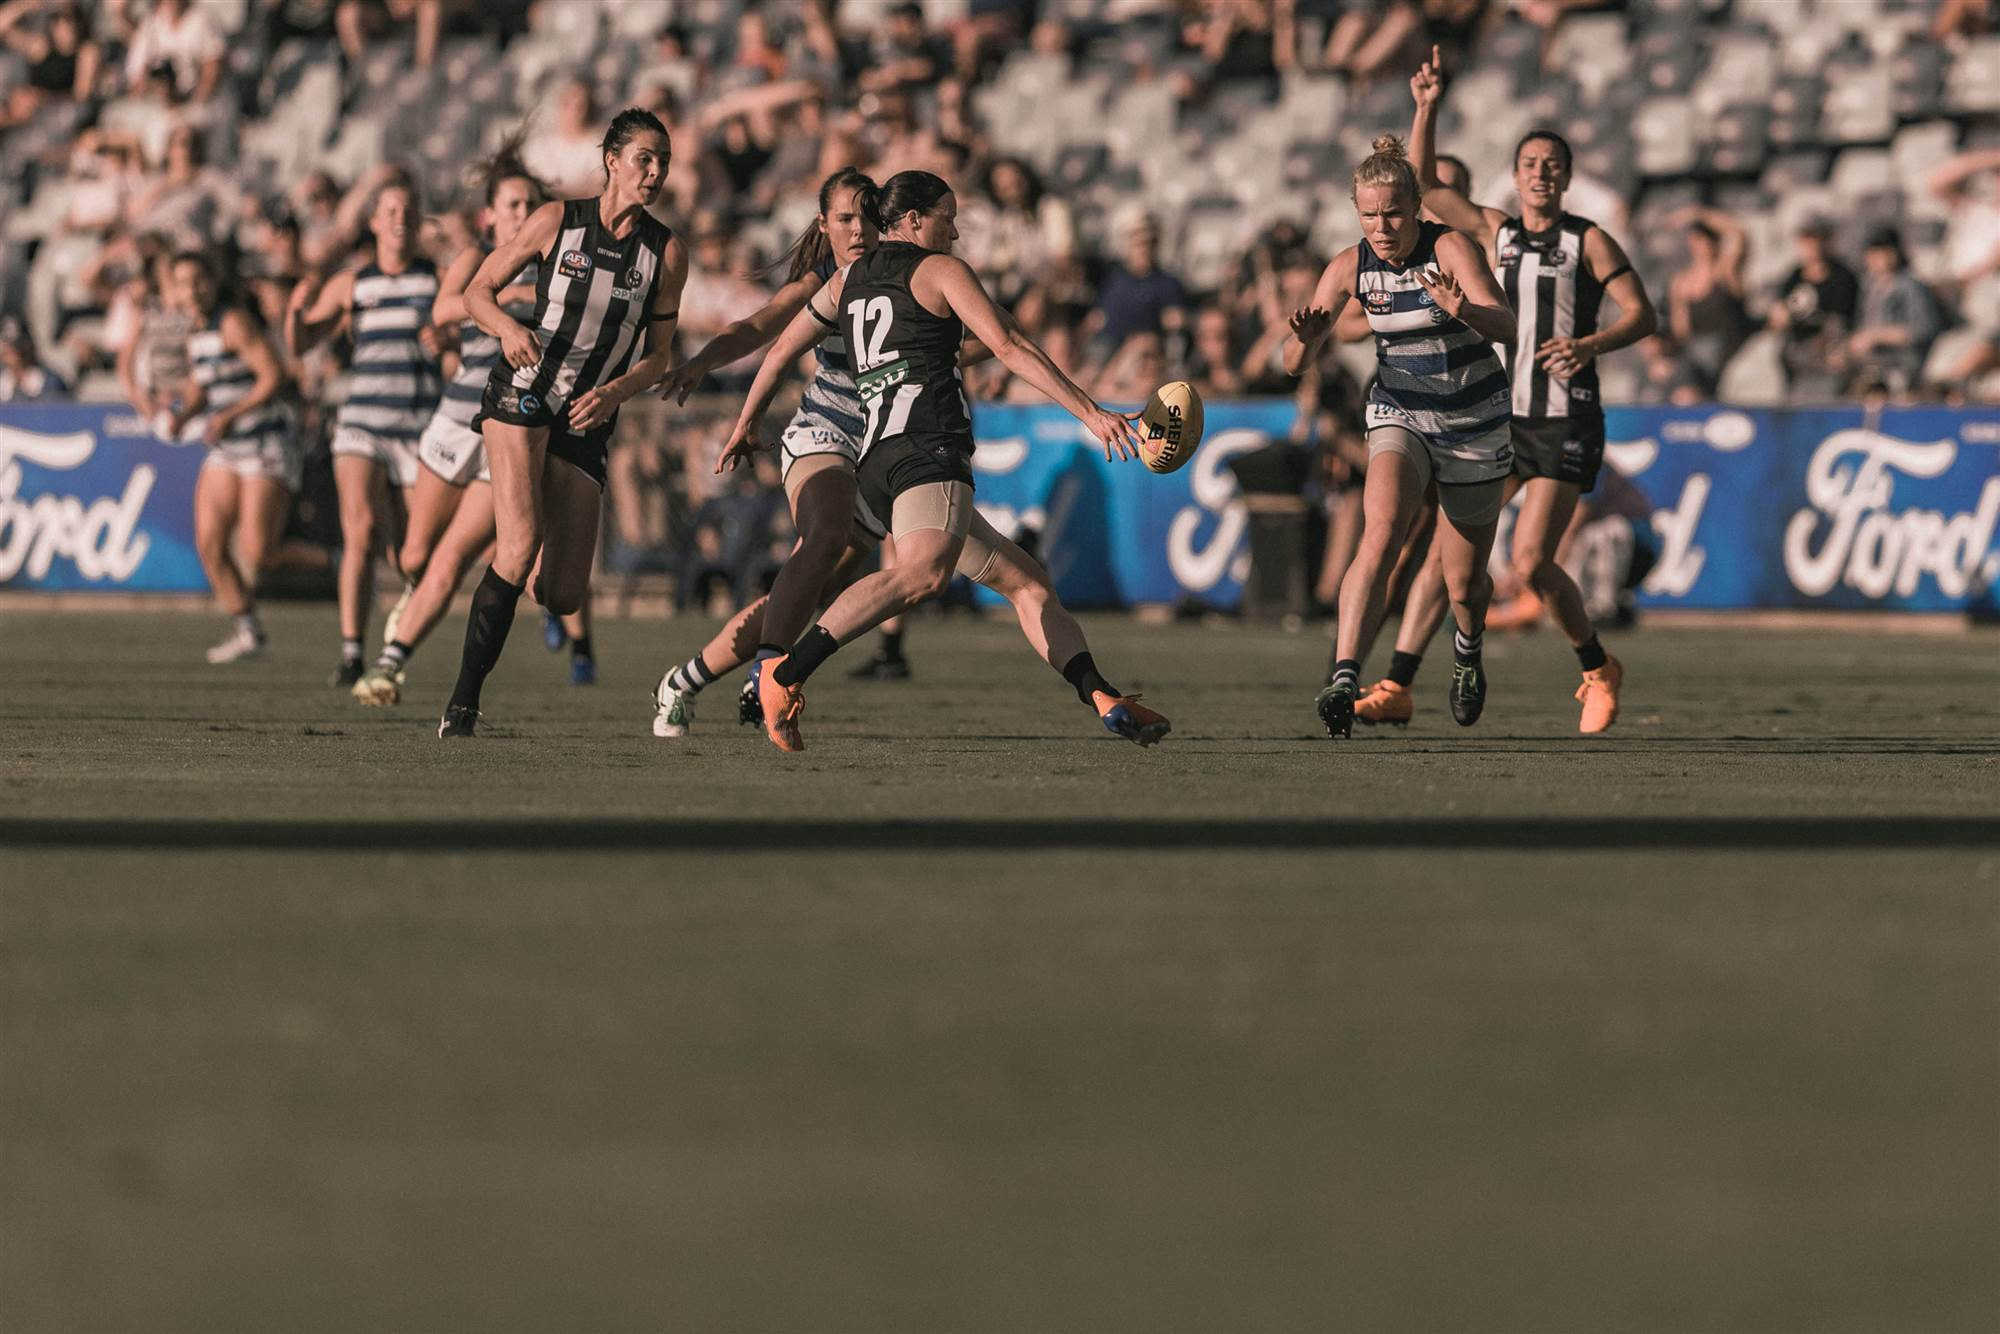 Pic Special Geelong V Collingwood The Women S Game Australia S Home Of Women S Sport News